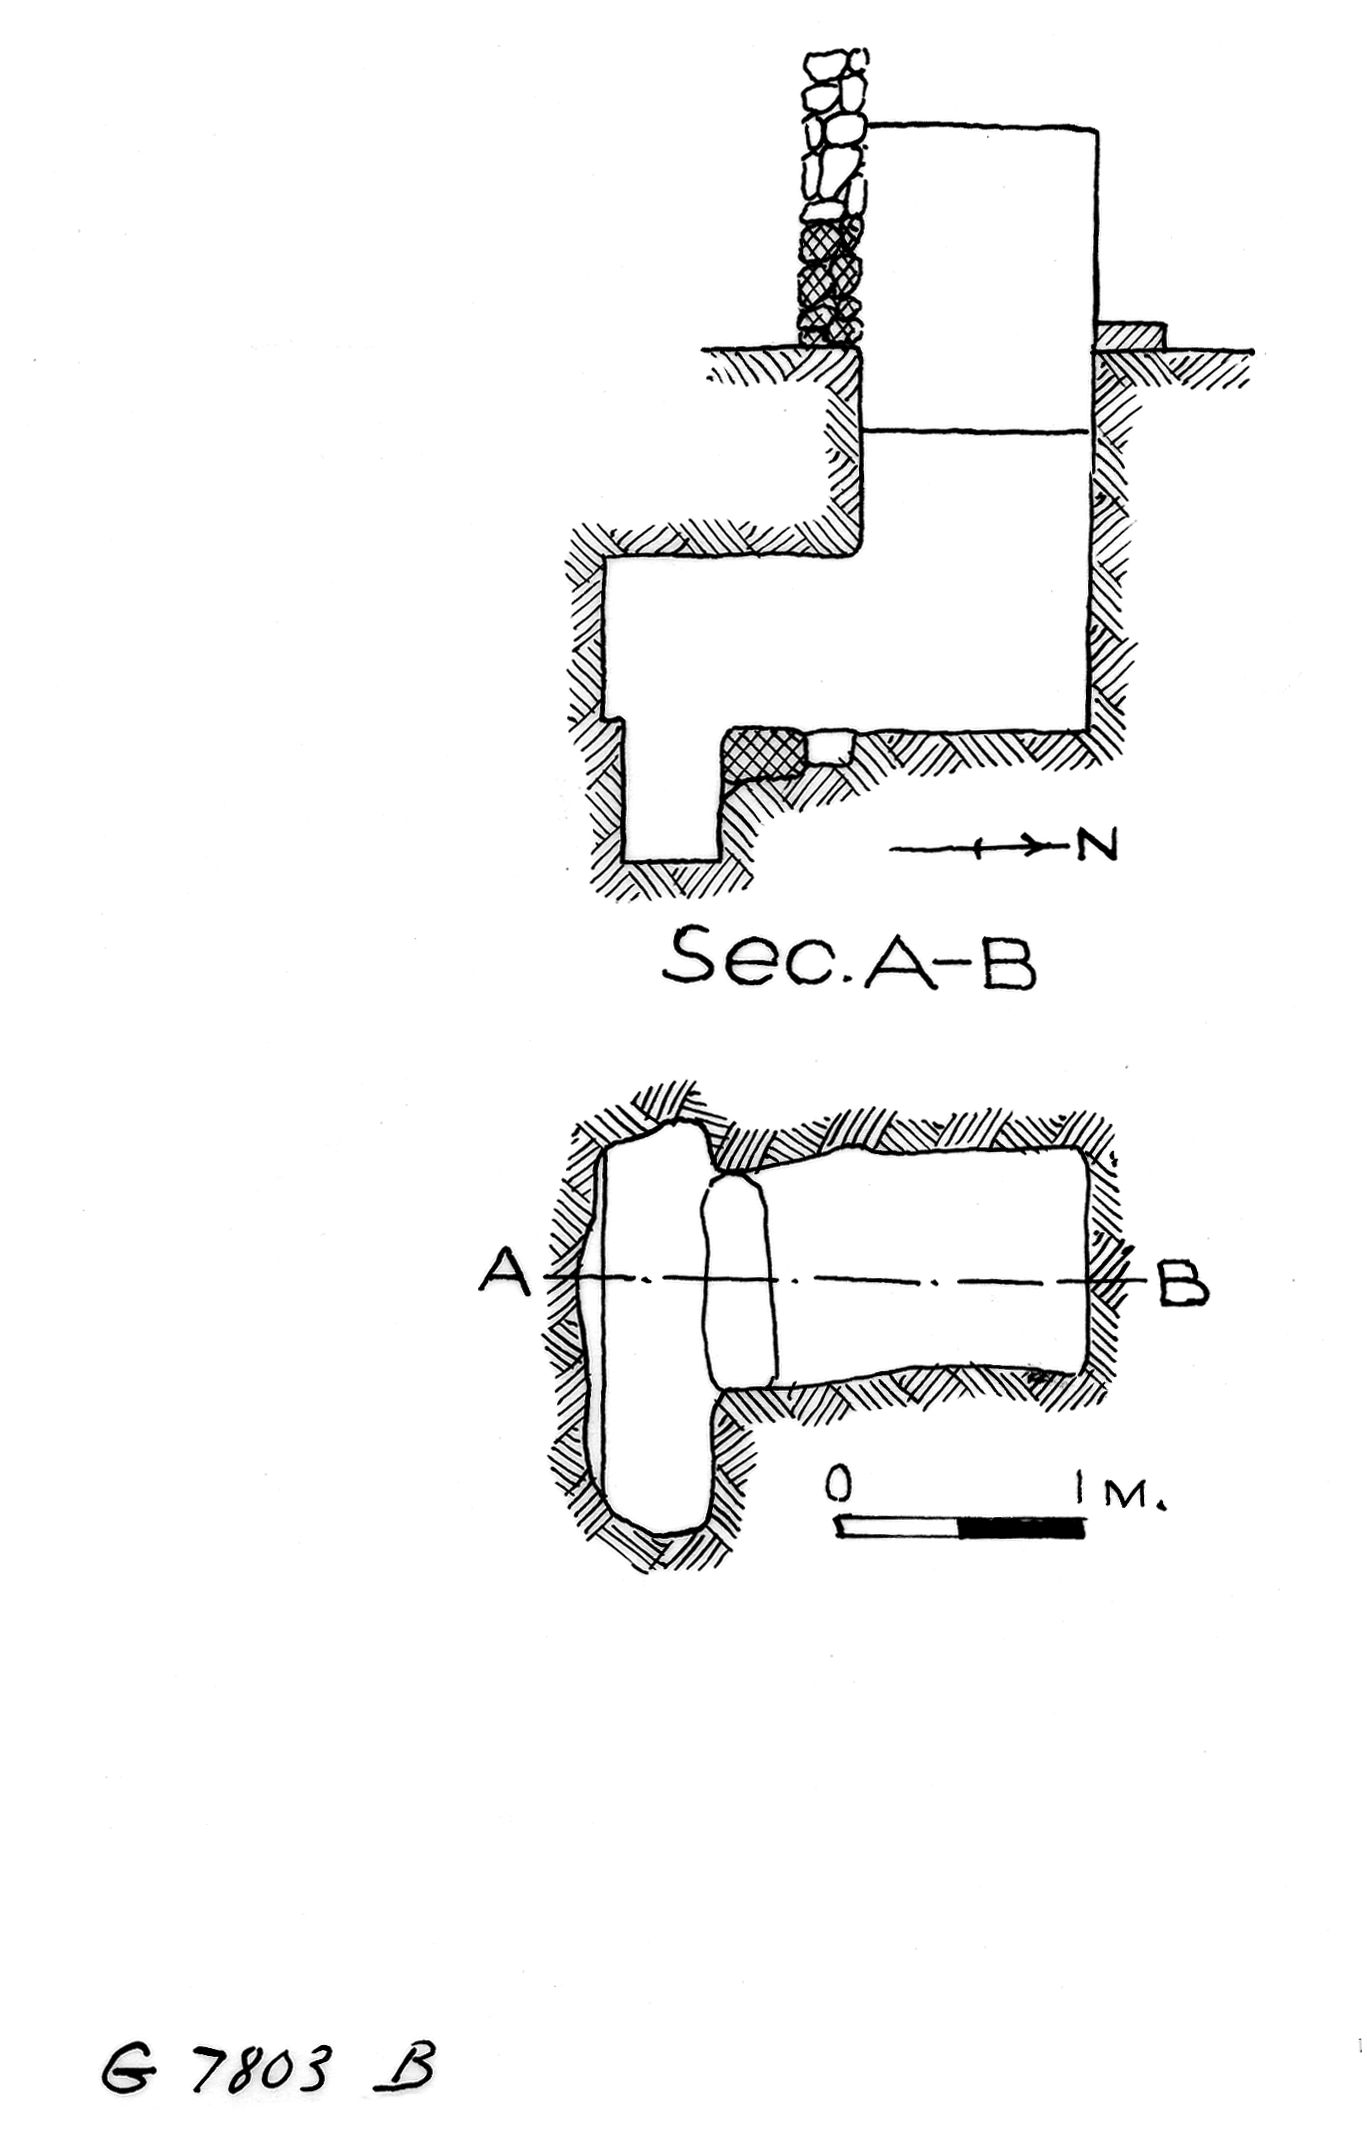 Maps and plans: G 7803, Shaft B